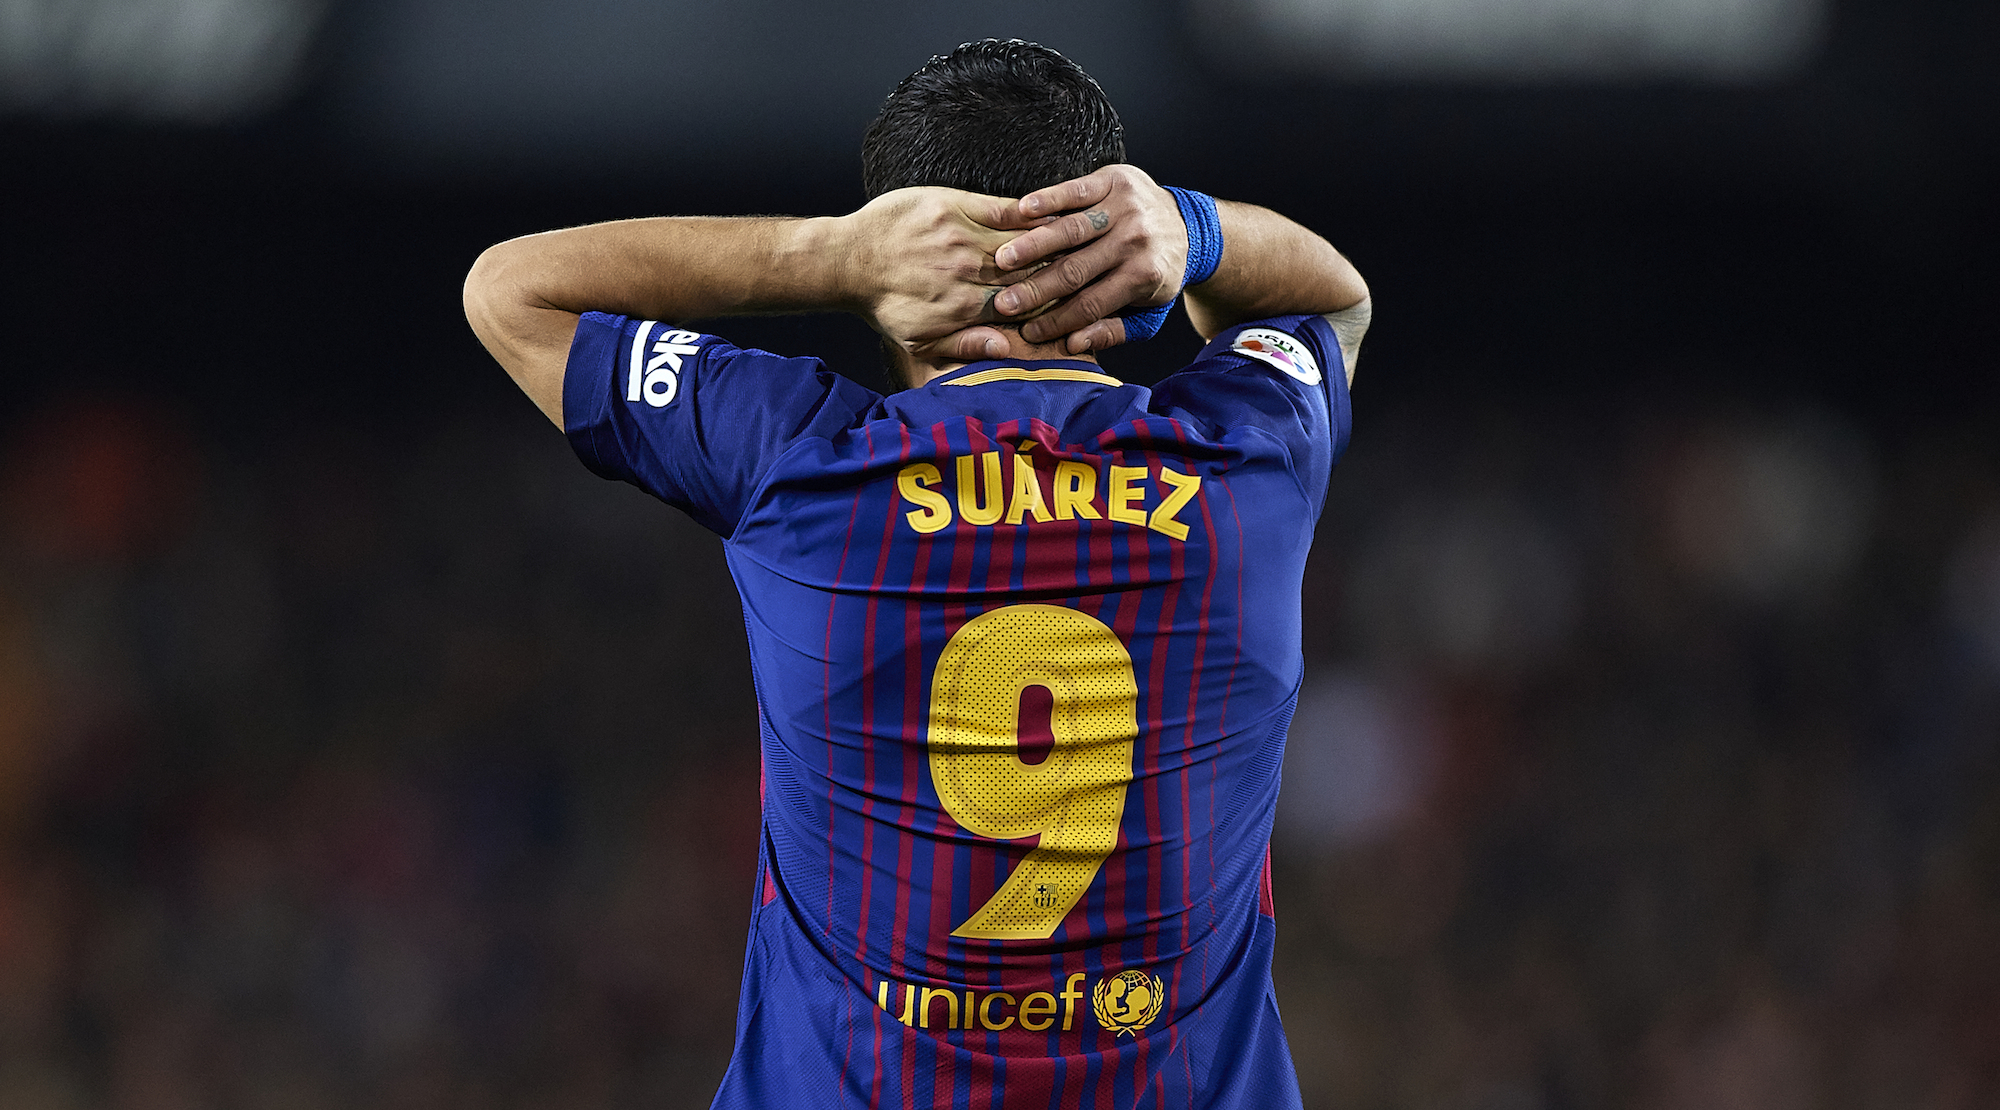 VALENCIA, SPAIN - NOVEMBER 26: Luis Suarez of Barcelona reacts during the La Liga match between Valencia and Barcelona at Estadio Mestalla on November 26, 2017 in Valencia, Spain. (Photo by Fotopress/Getty Images)